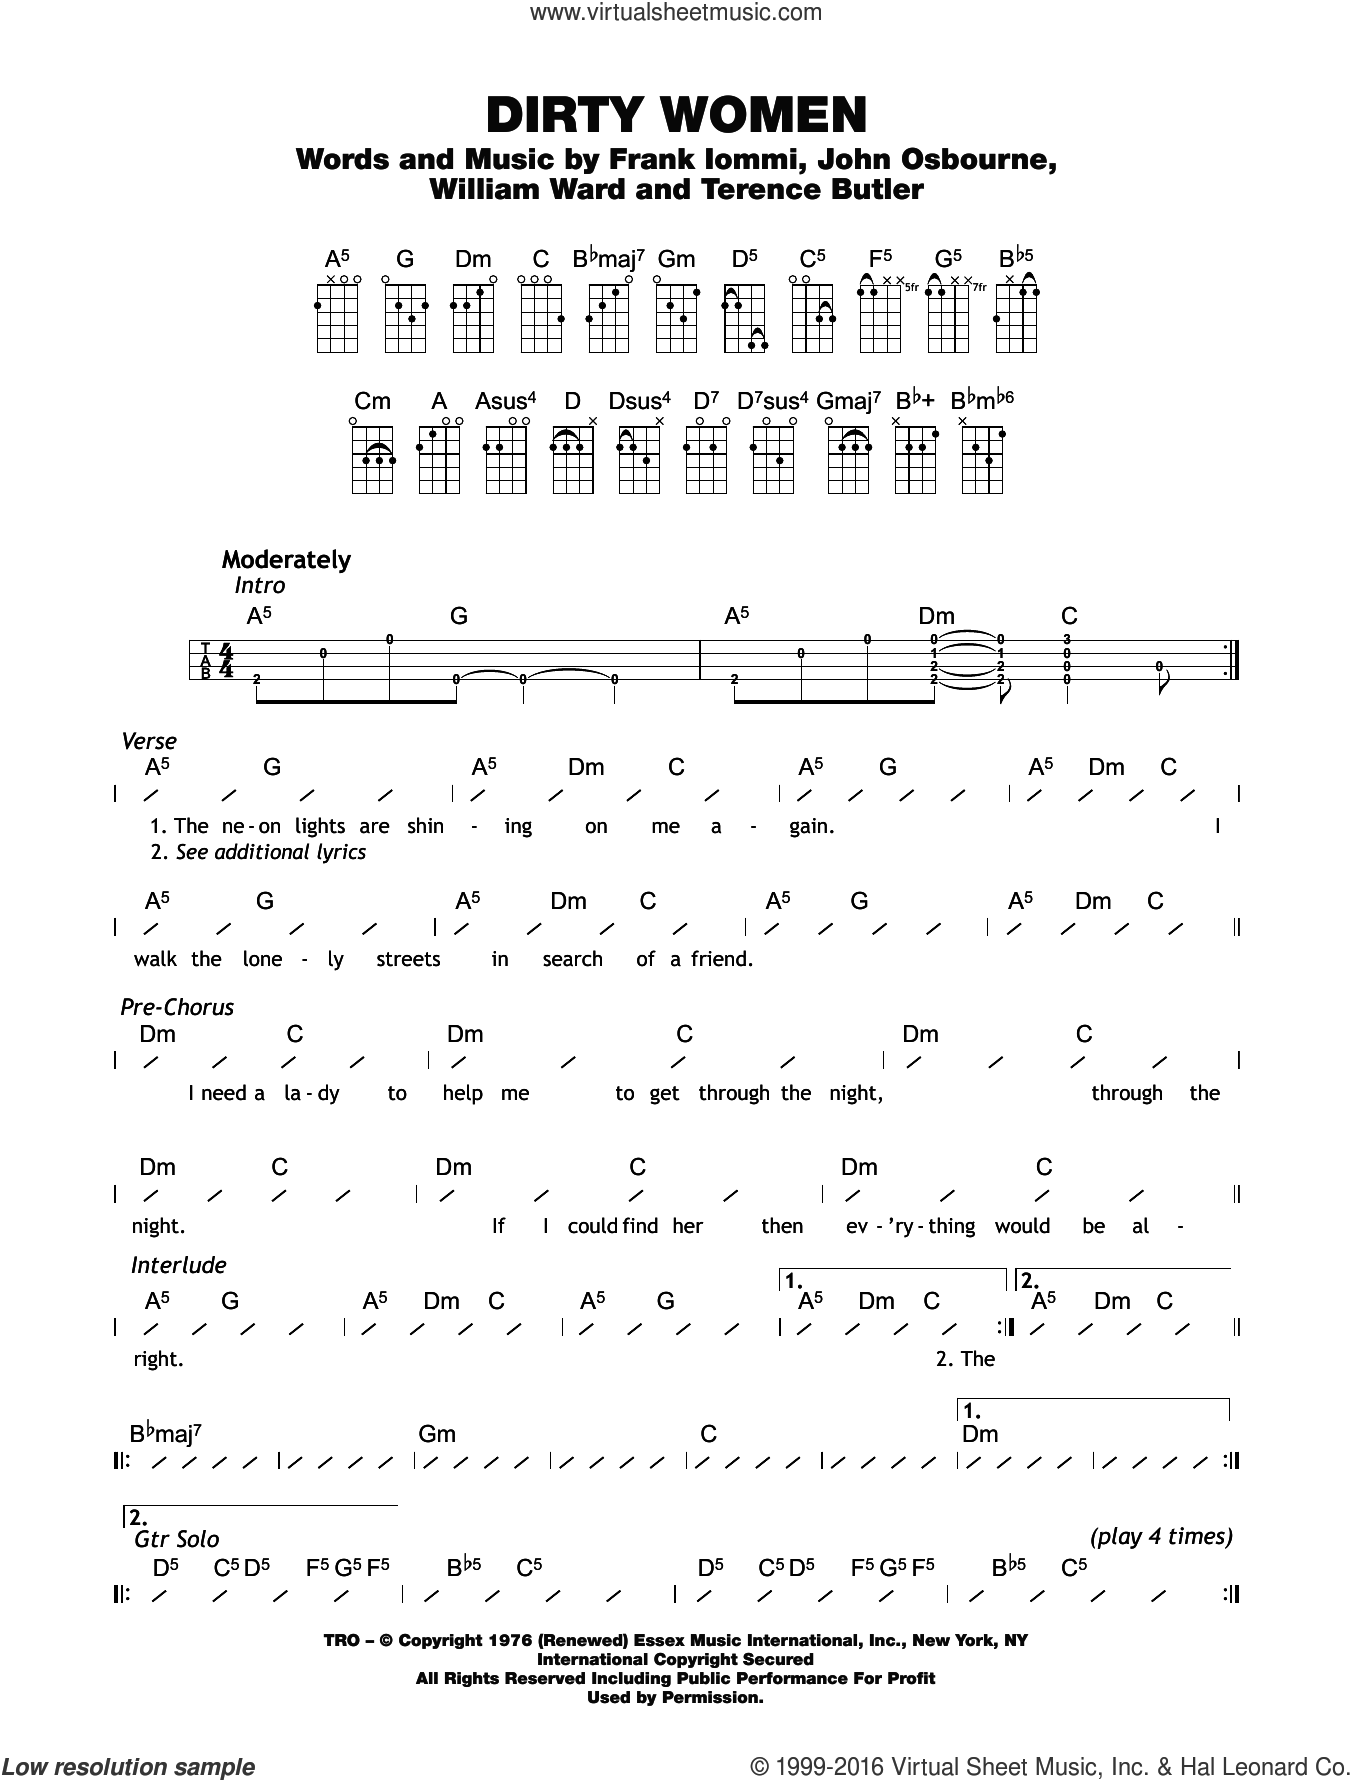 Dirty Women sheet music for ukulele (chords) by Black Sabbath, Billy Ward, Frank Iommi, John Osbourne and Terrence Butler, intermediate